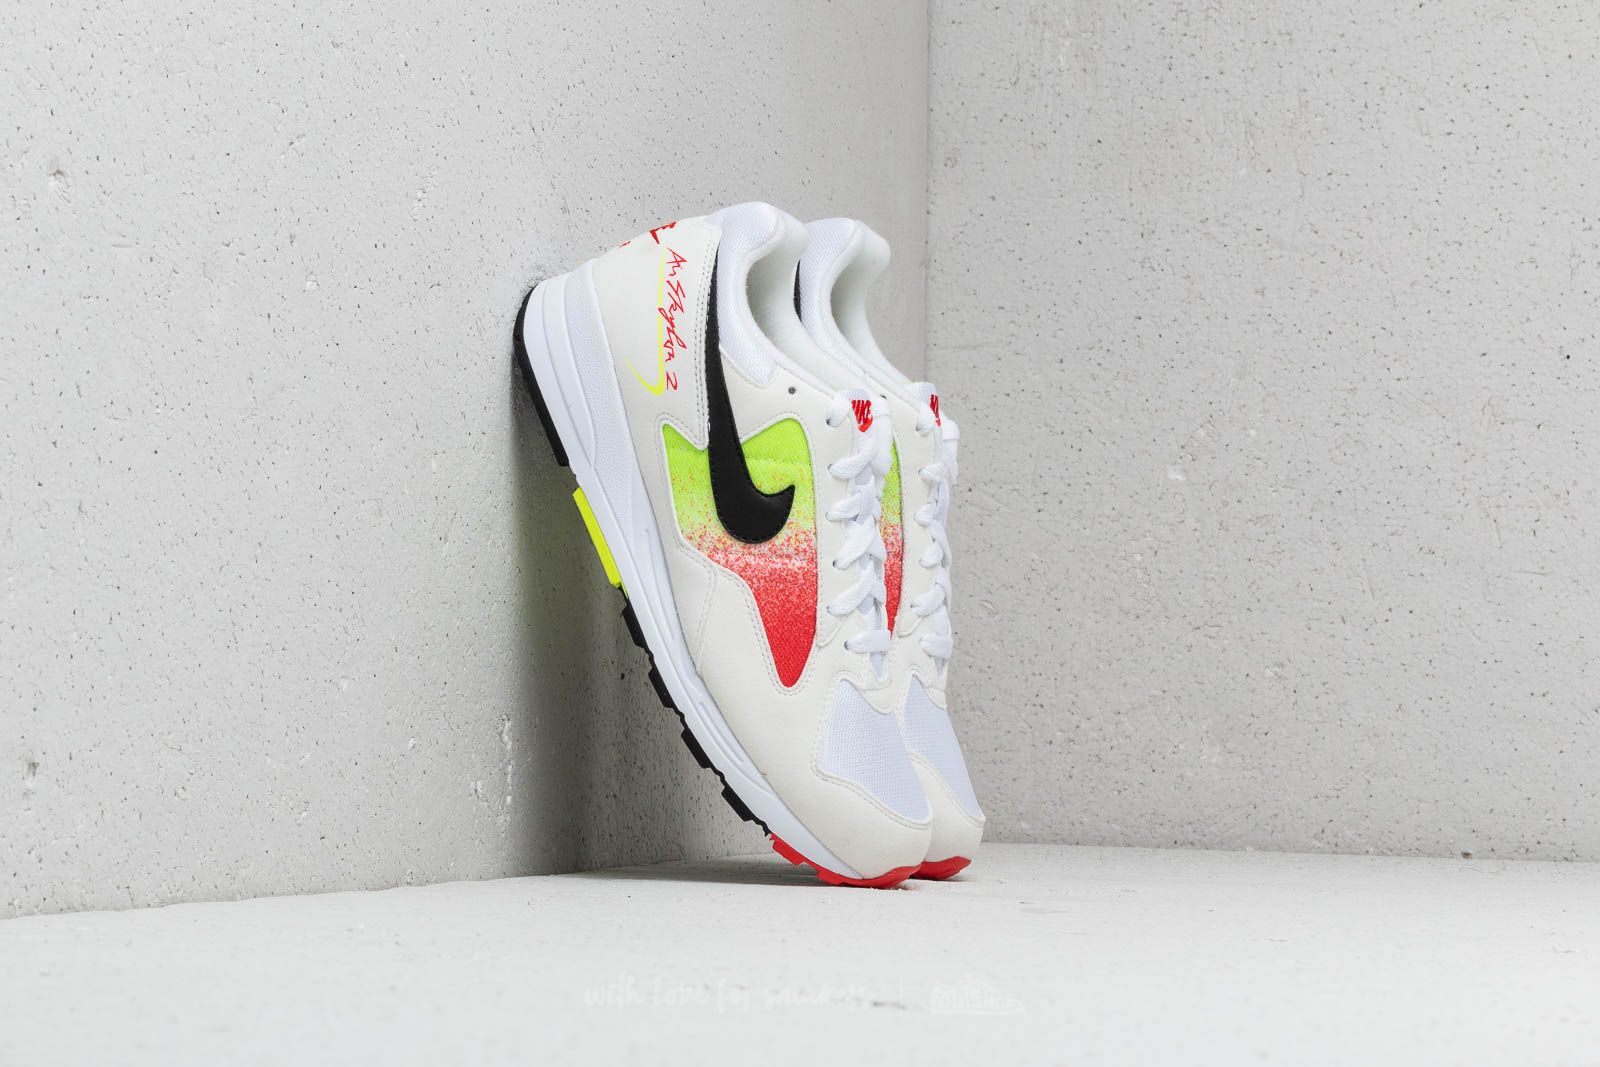 Nike Air Skylon II White/ Black-Volt-Habanero Red